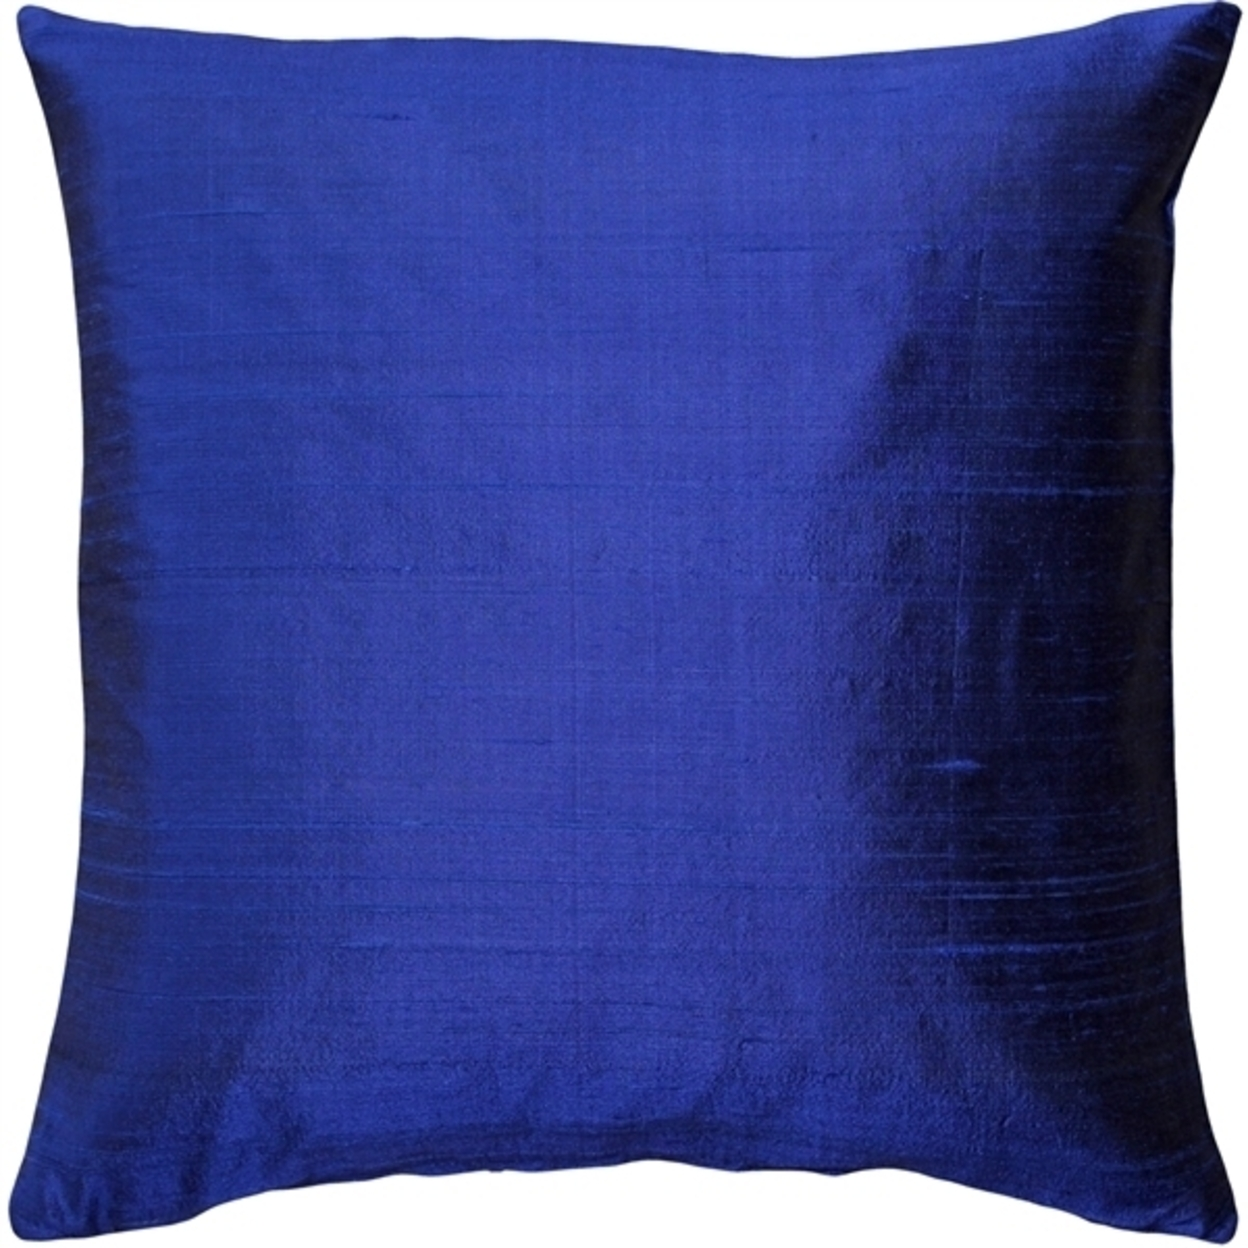 Pillow Decor - Sankara Ink Blue Silk Throw Pillow 20x20 56578f59a3771c8f498bcccf